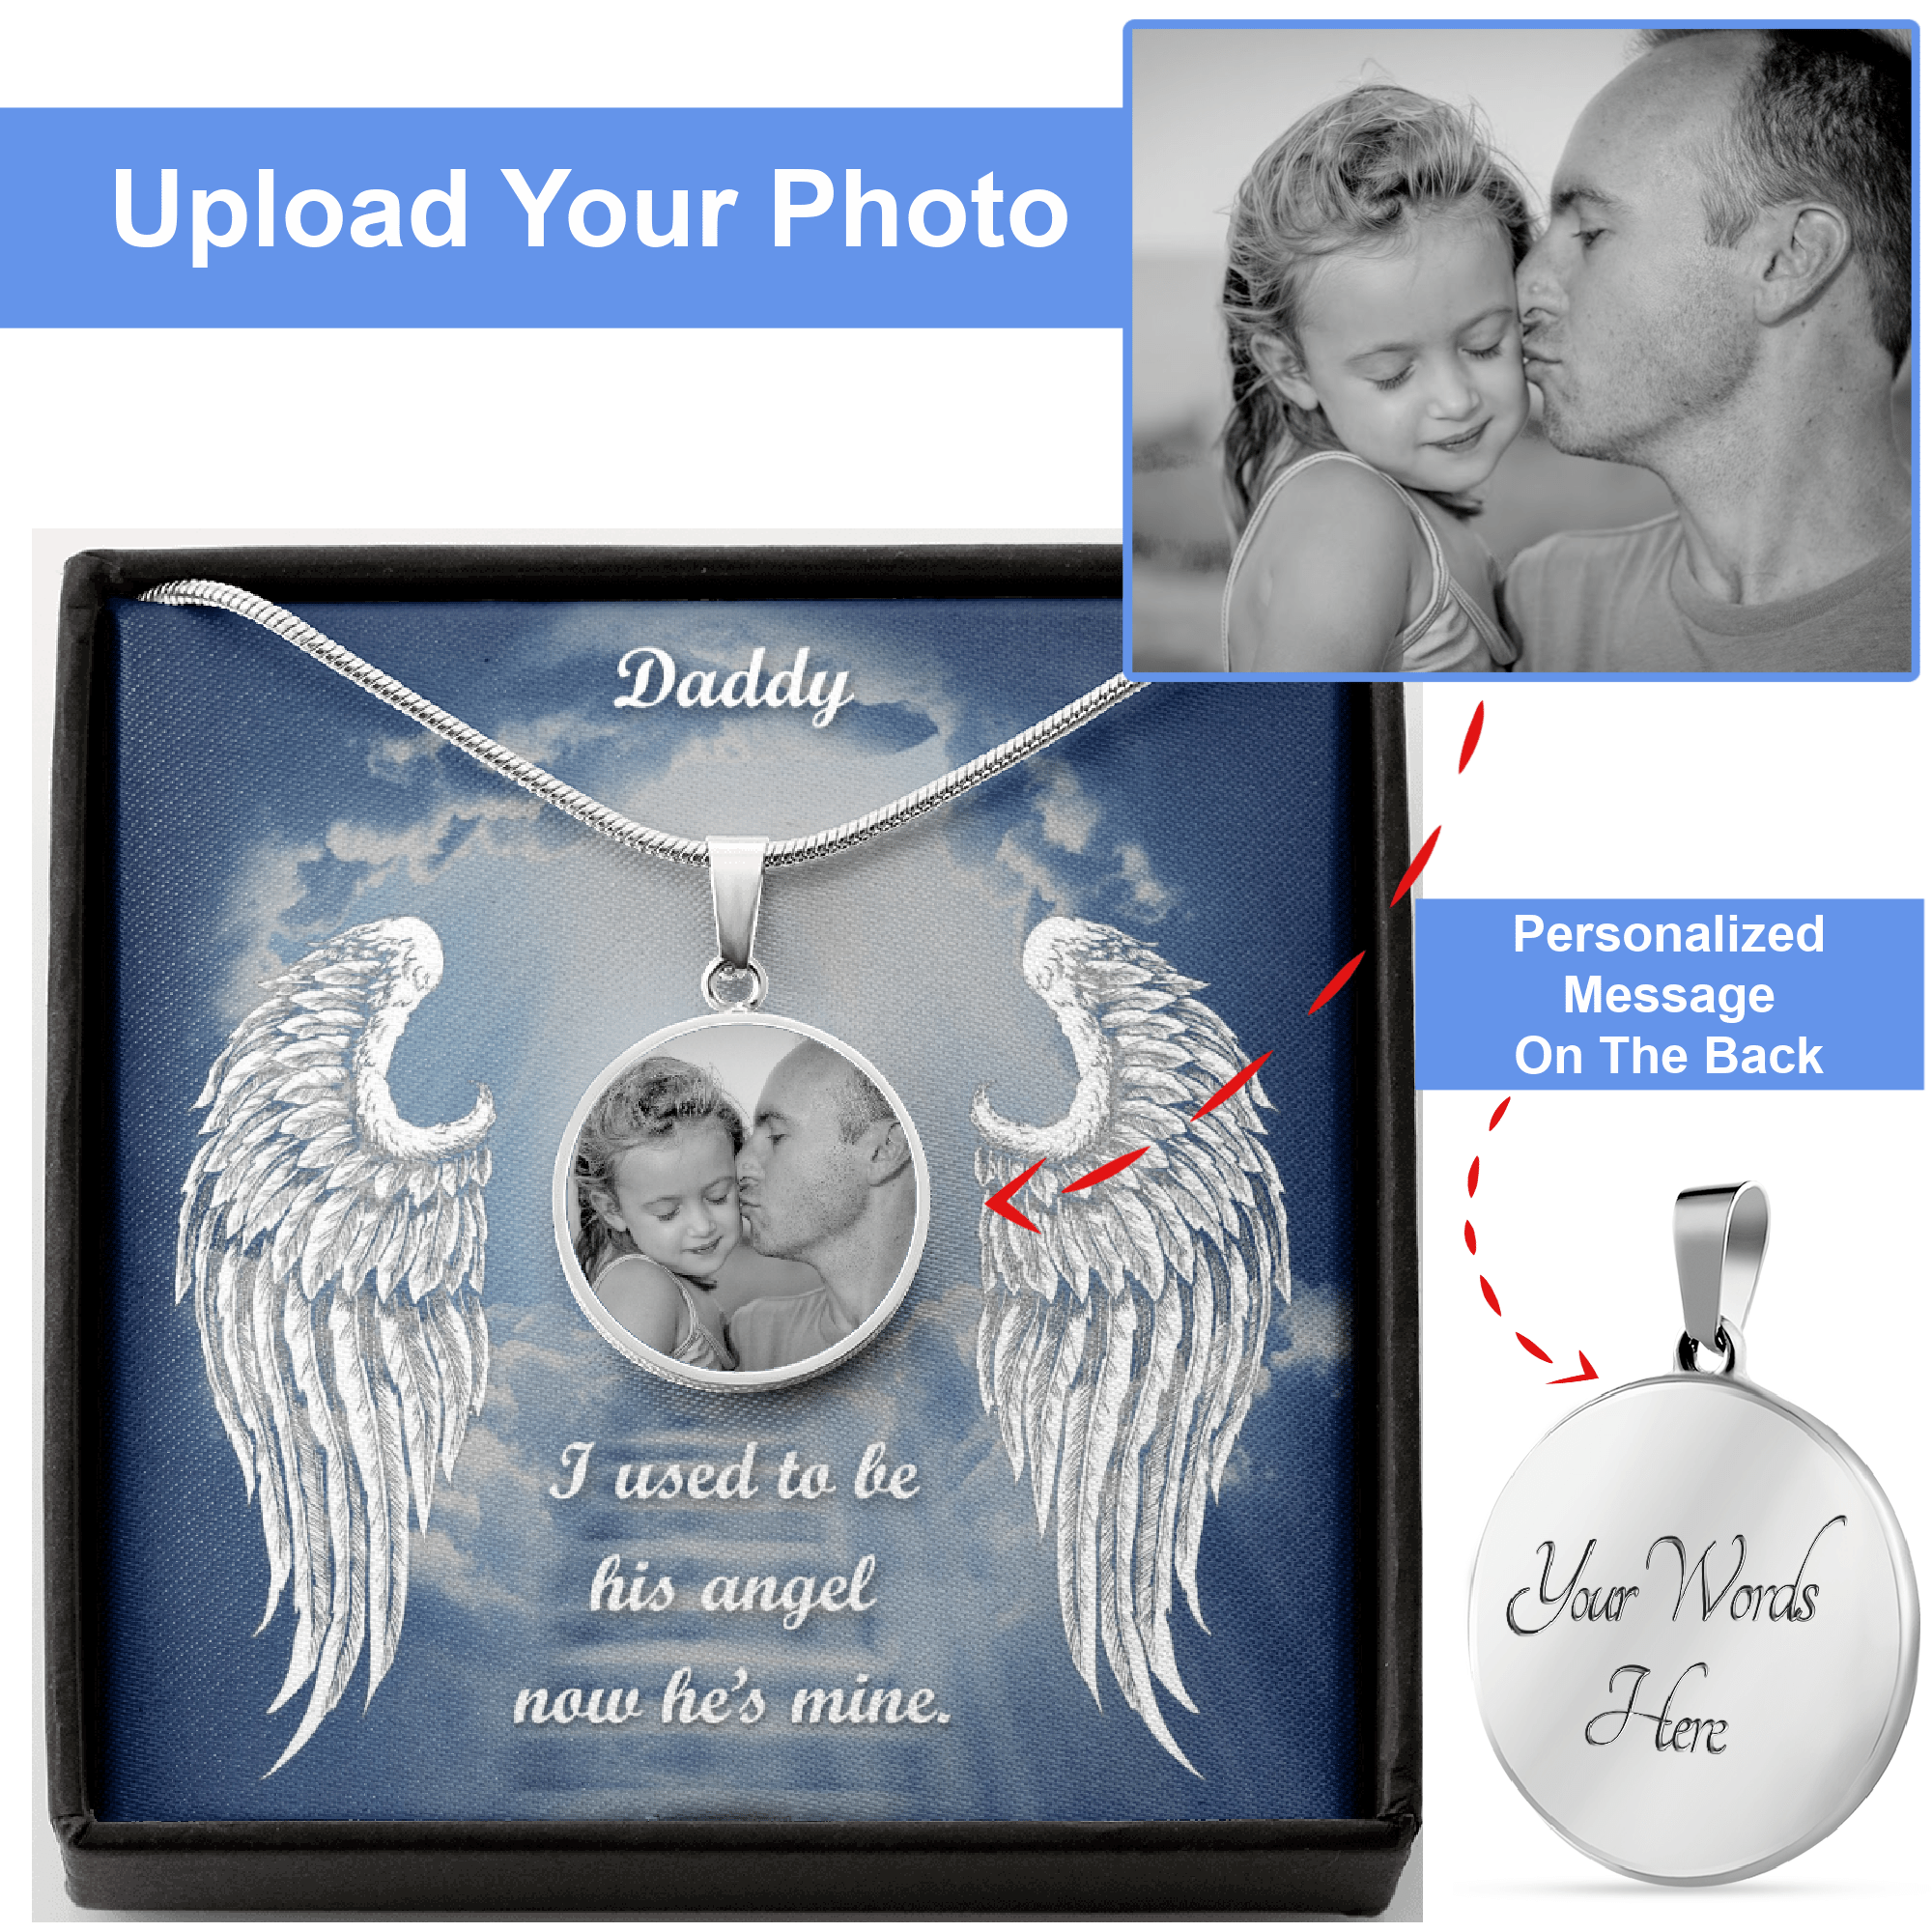 Daddy In Loving Memory Necklace With Picture I Used To Be His Angel Now He's Mine